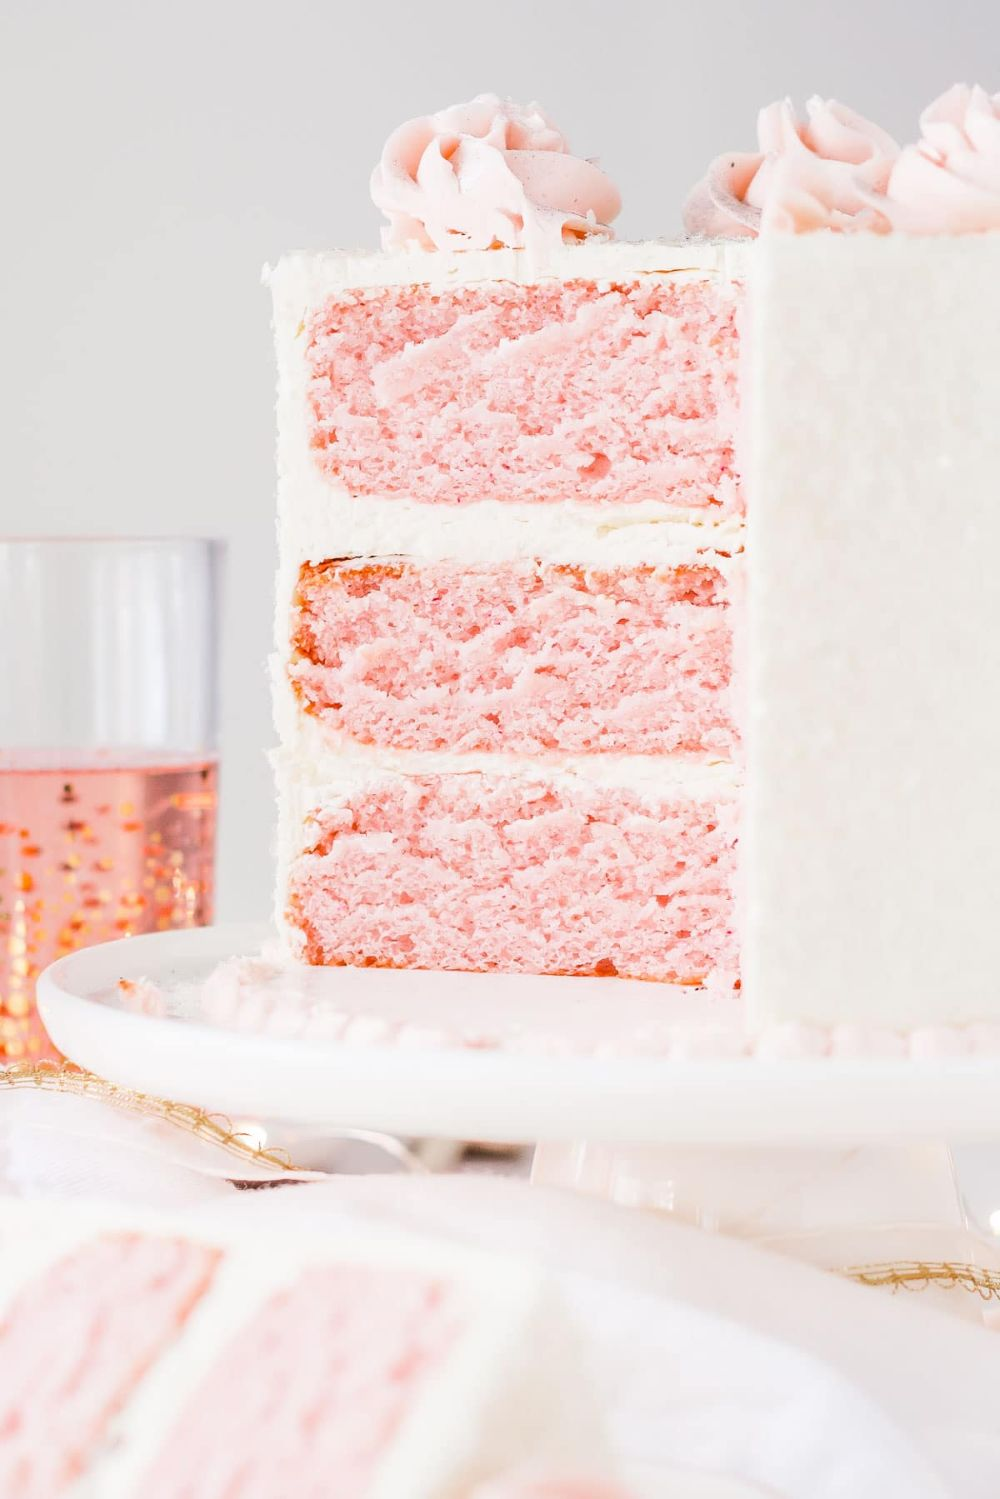 Cross section of pink champagne cake with vanilla buttercream.